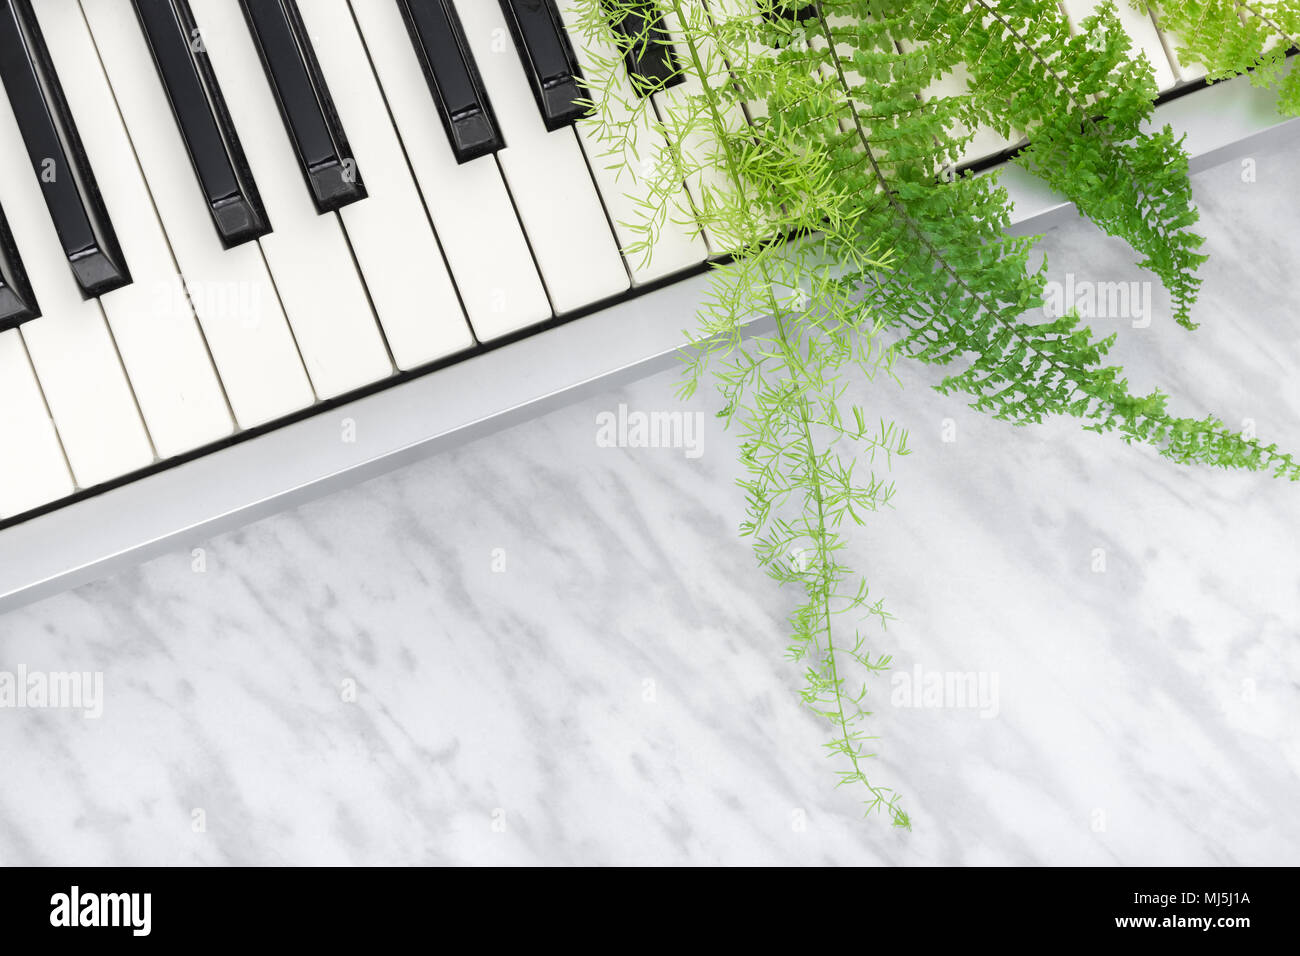 Sounds of nature. Electric piano keys and green fern leaves, on marble background. - Stock Image